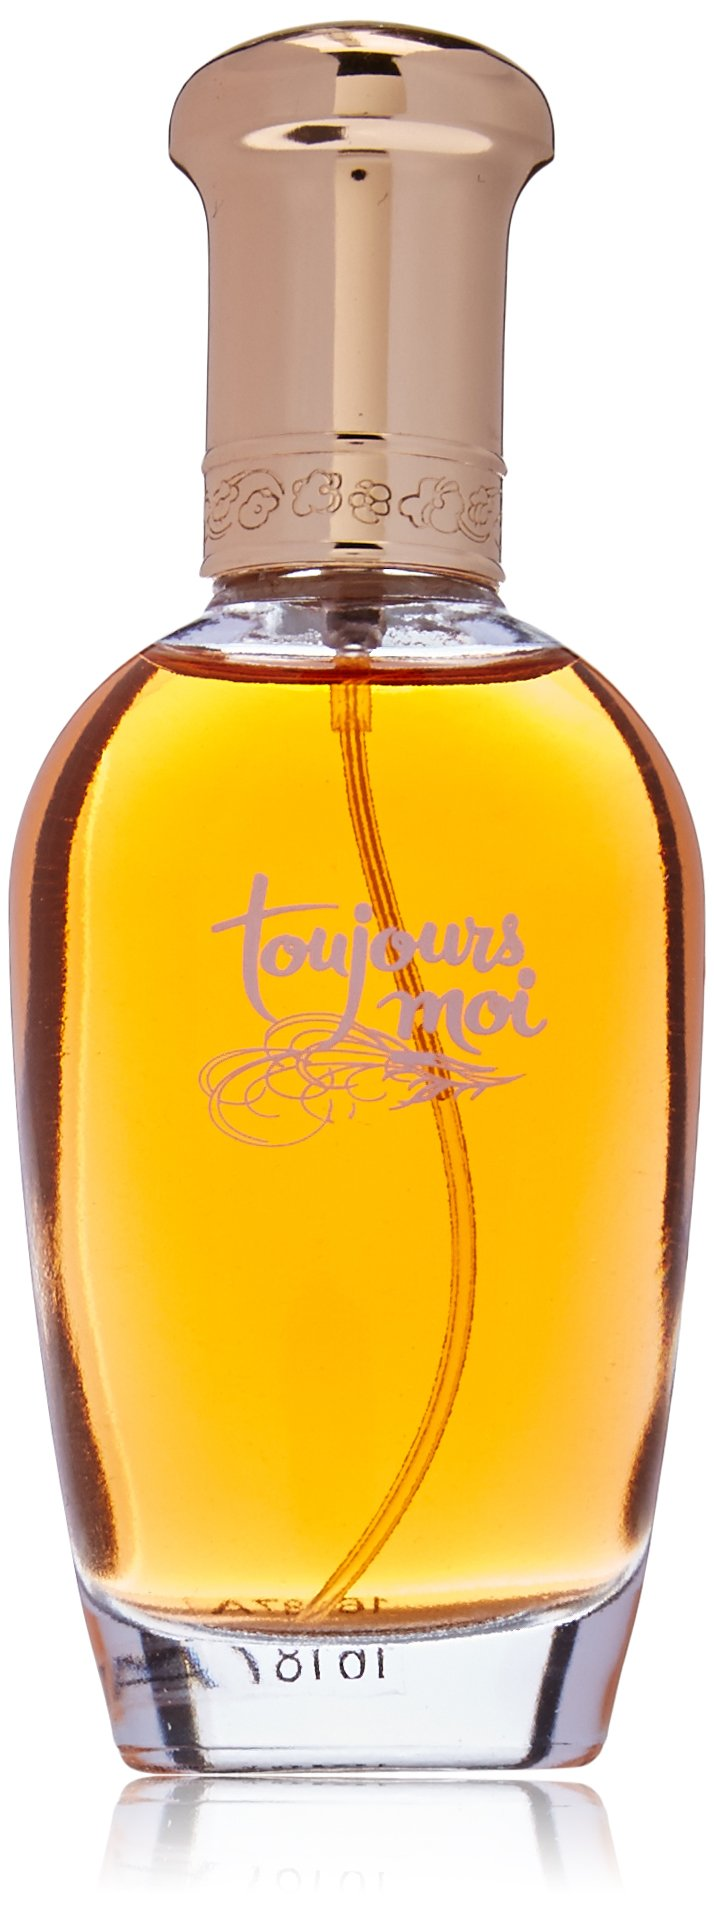 Dana Classic Fragrances INC Toujours Moi For Women EDC Spray Toujours Moi 2.0 oz 1 Unit, 1 Item